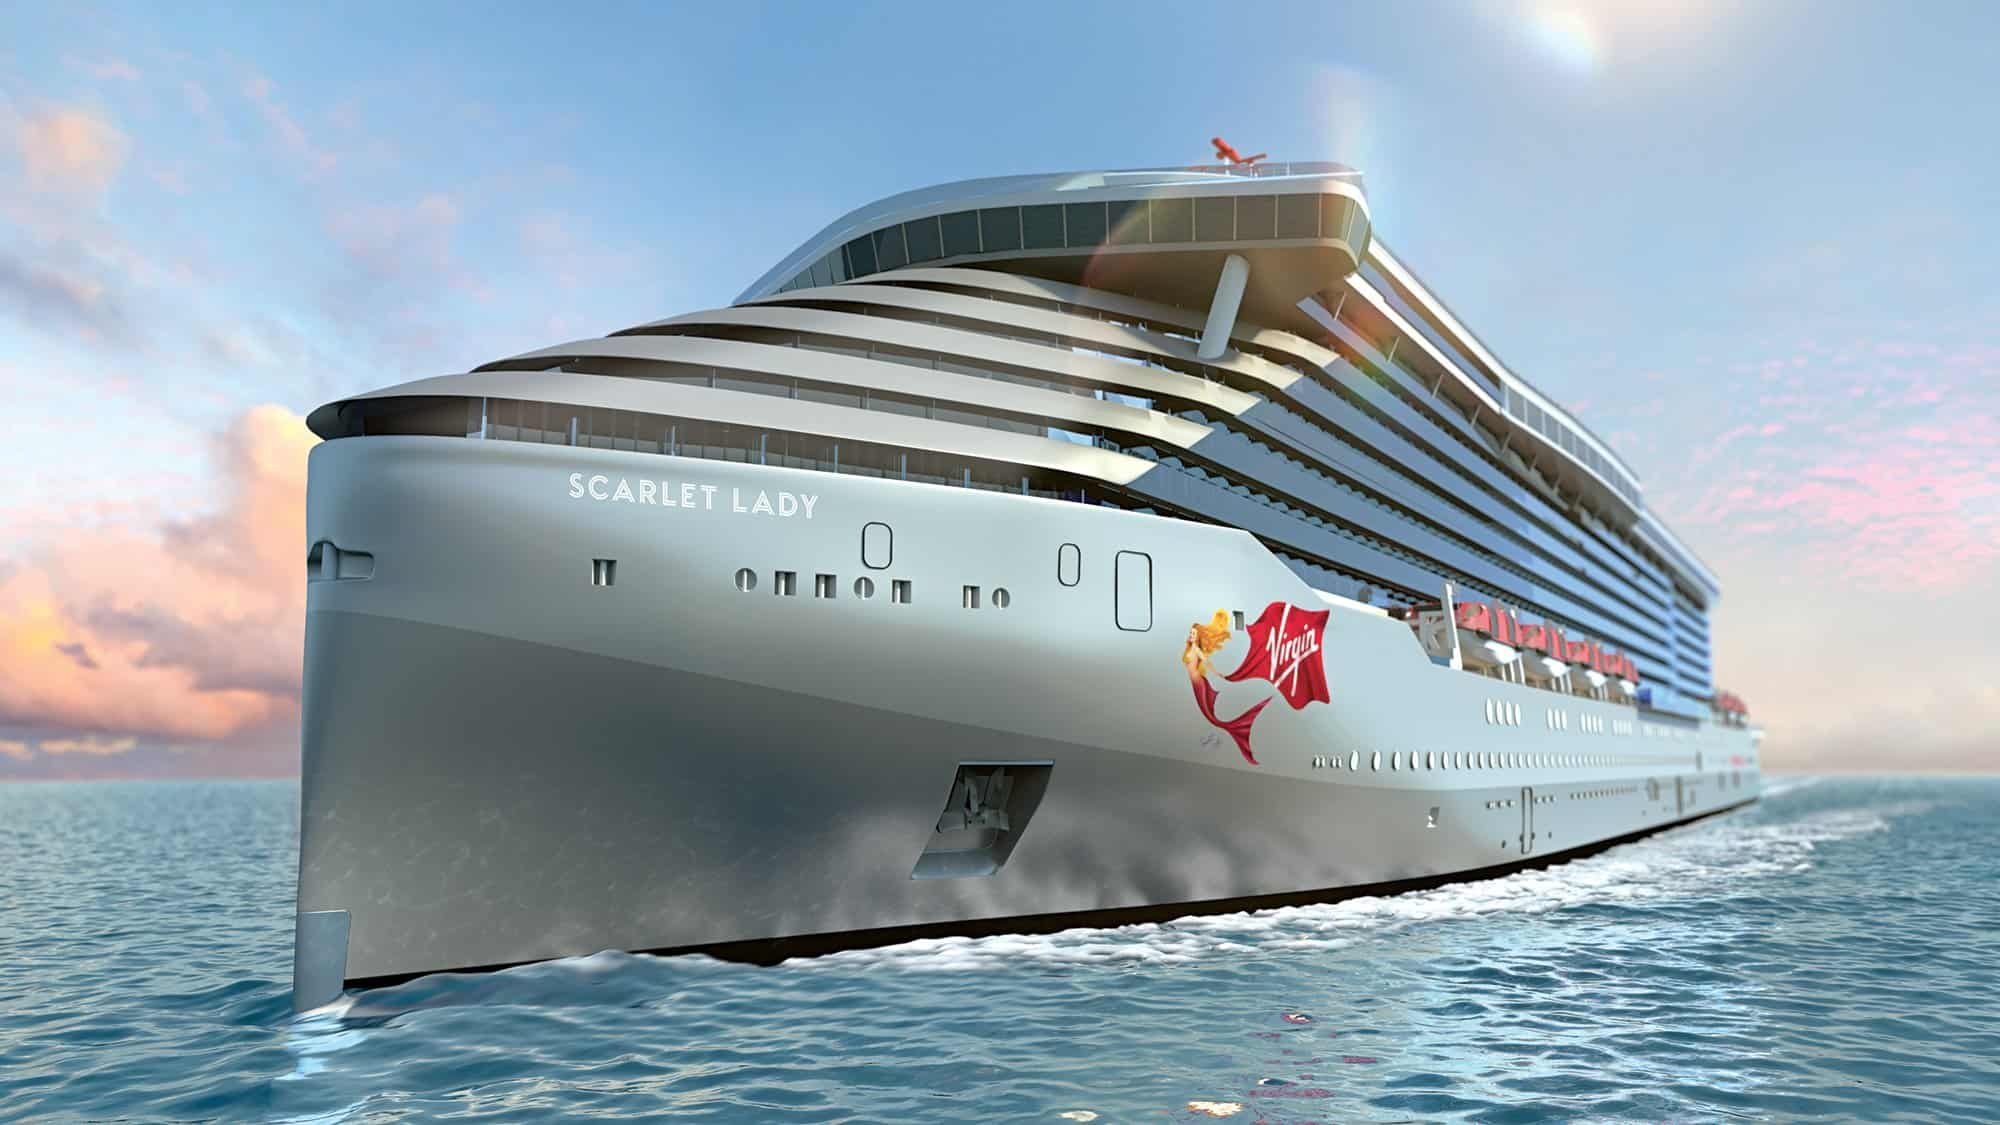 Worlds Largest Cruise Ship 2020.Eight New Cruise Ships To Look Forward To In 2020